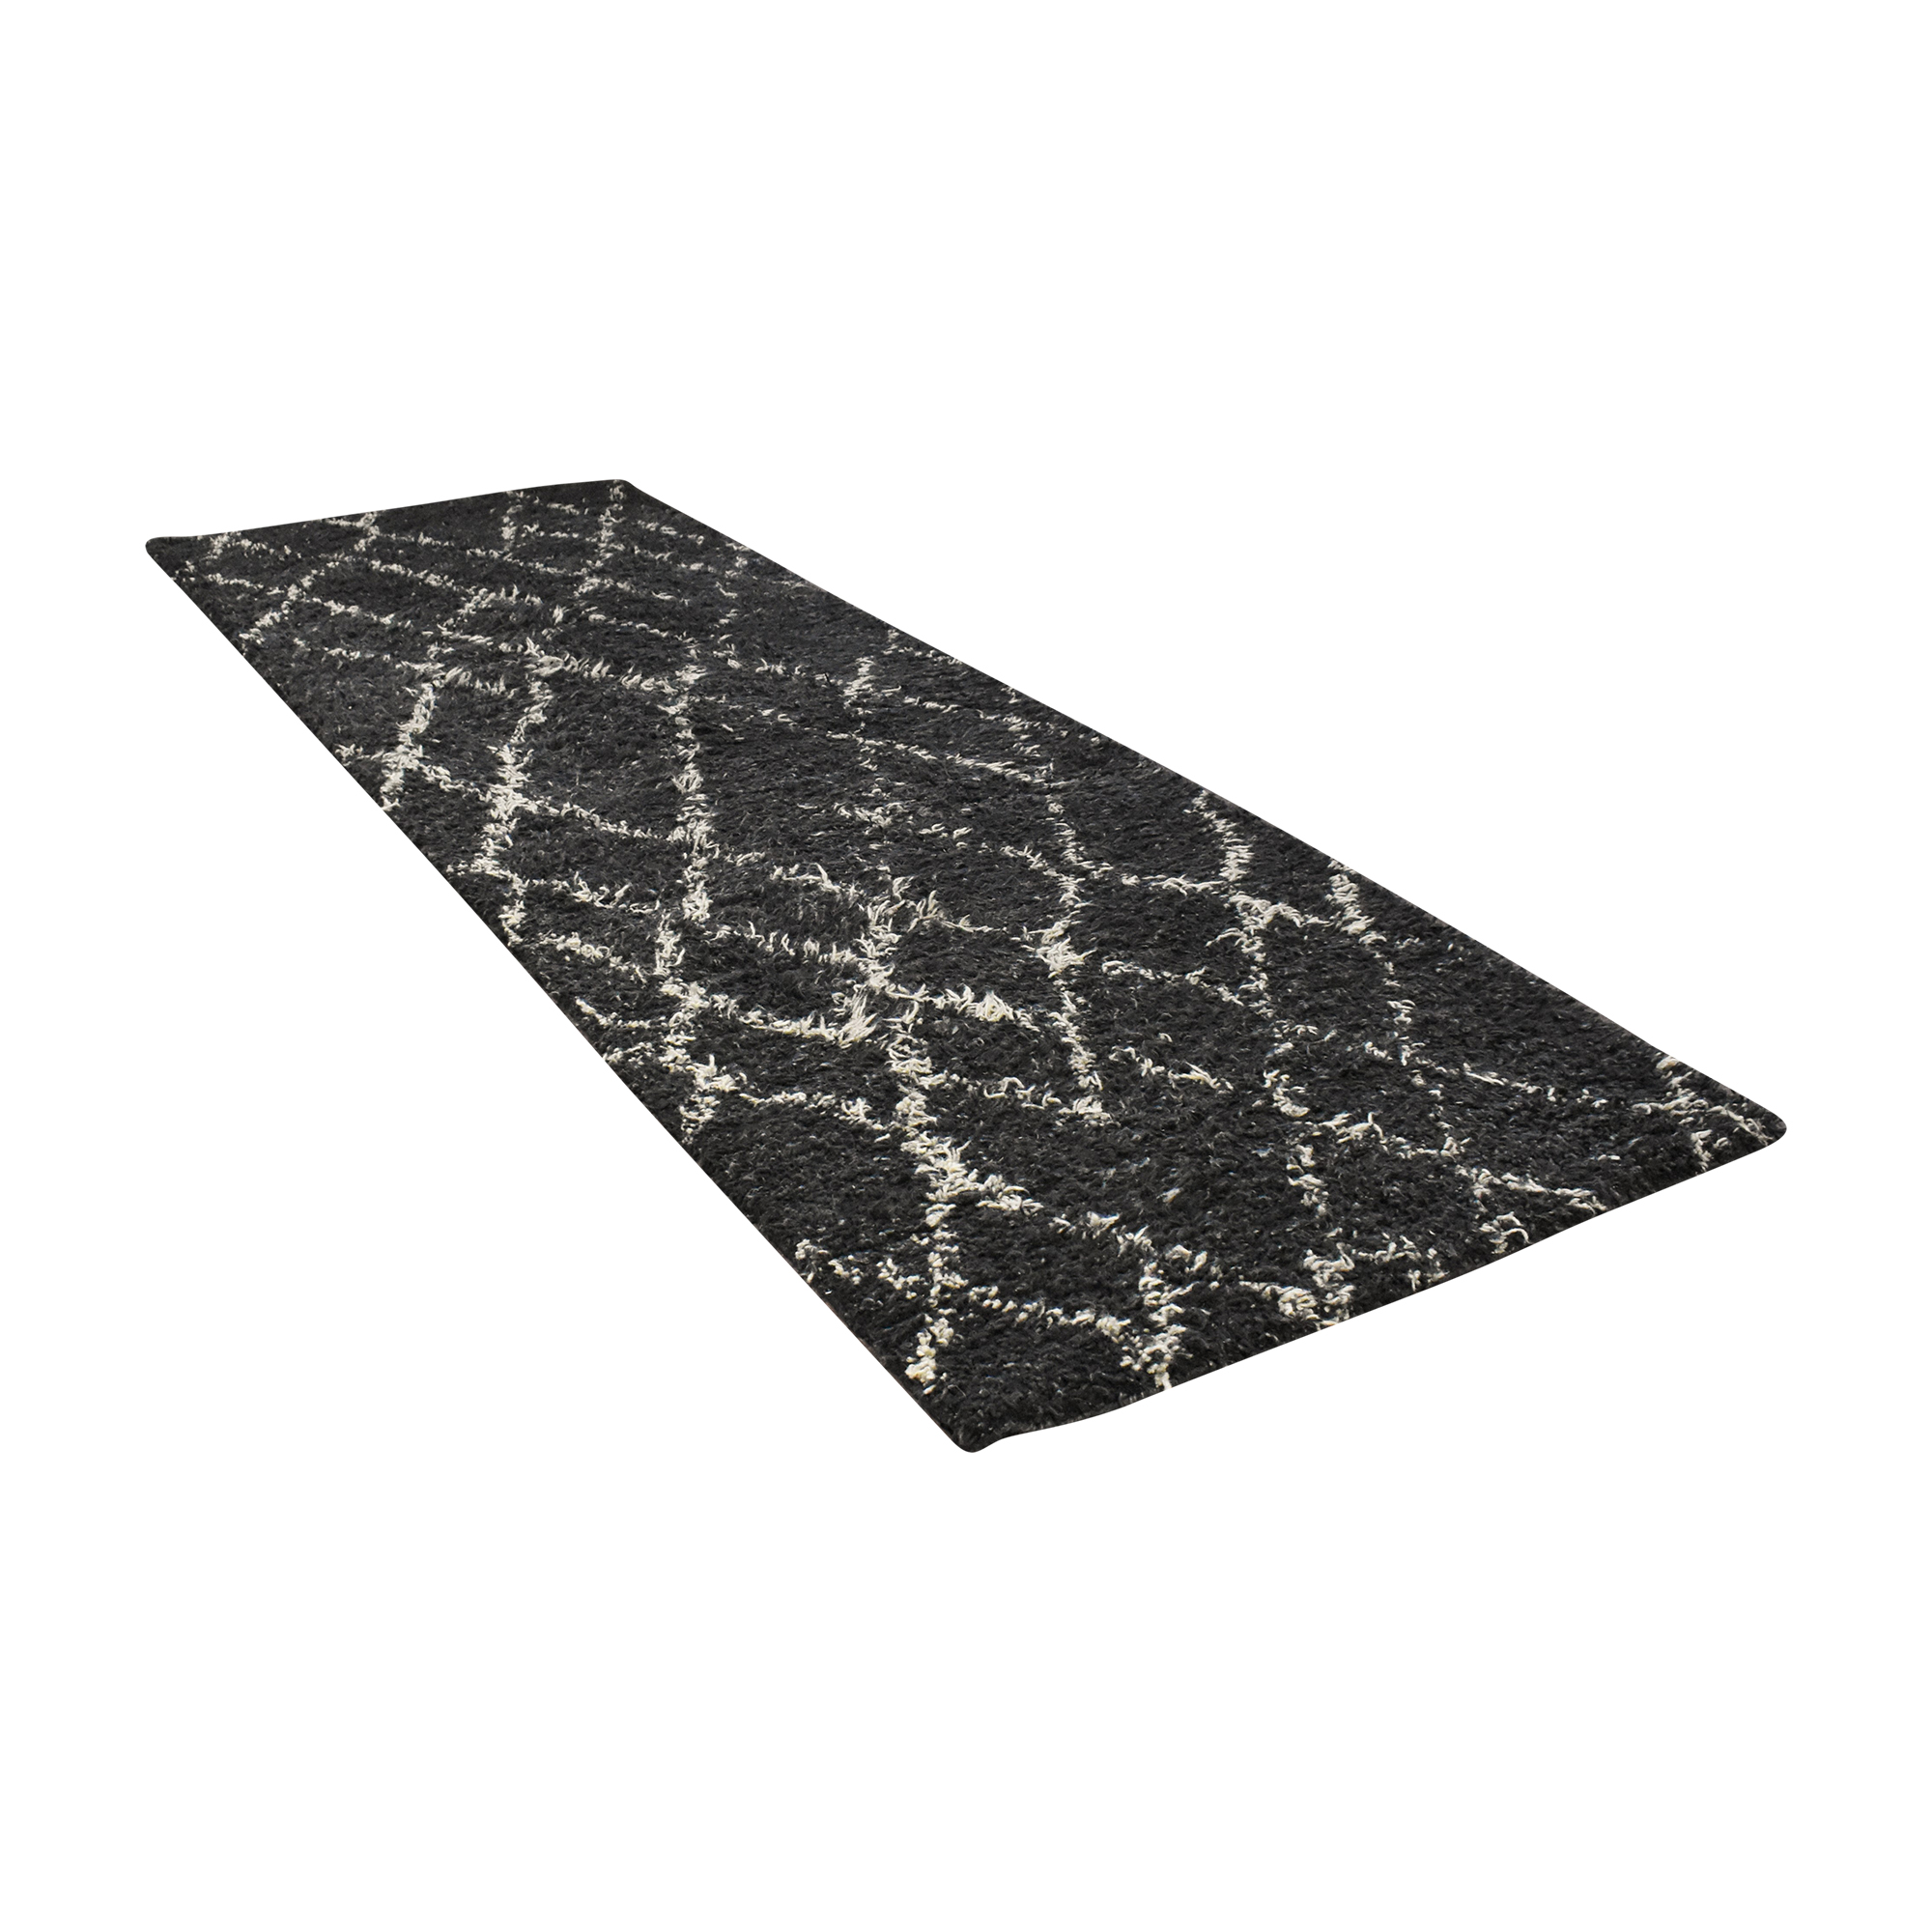 Restoration Hardware Restoration Hardware Ben Soleimani Patterned Area Rug second hand